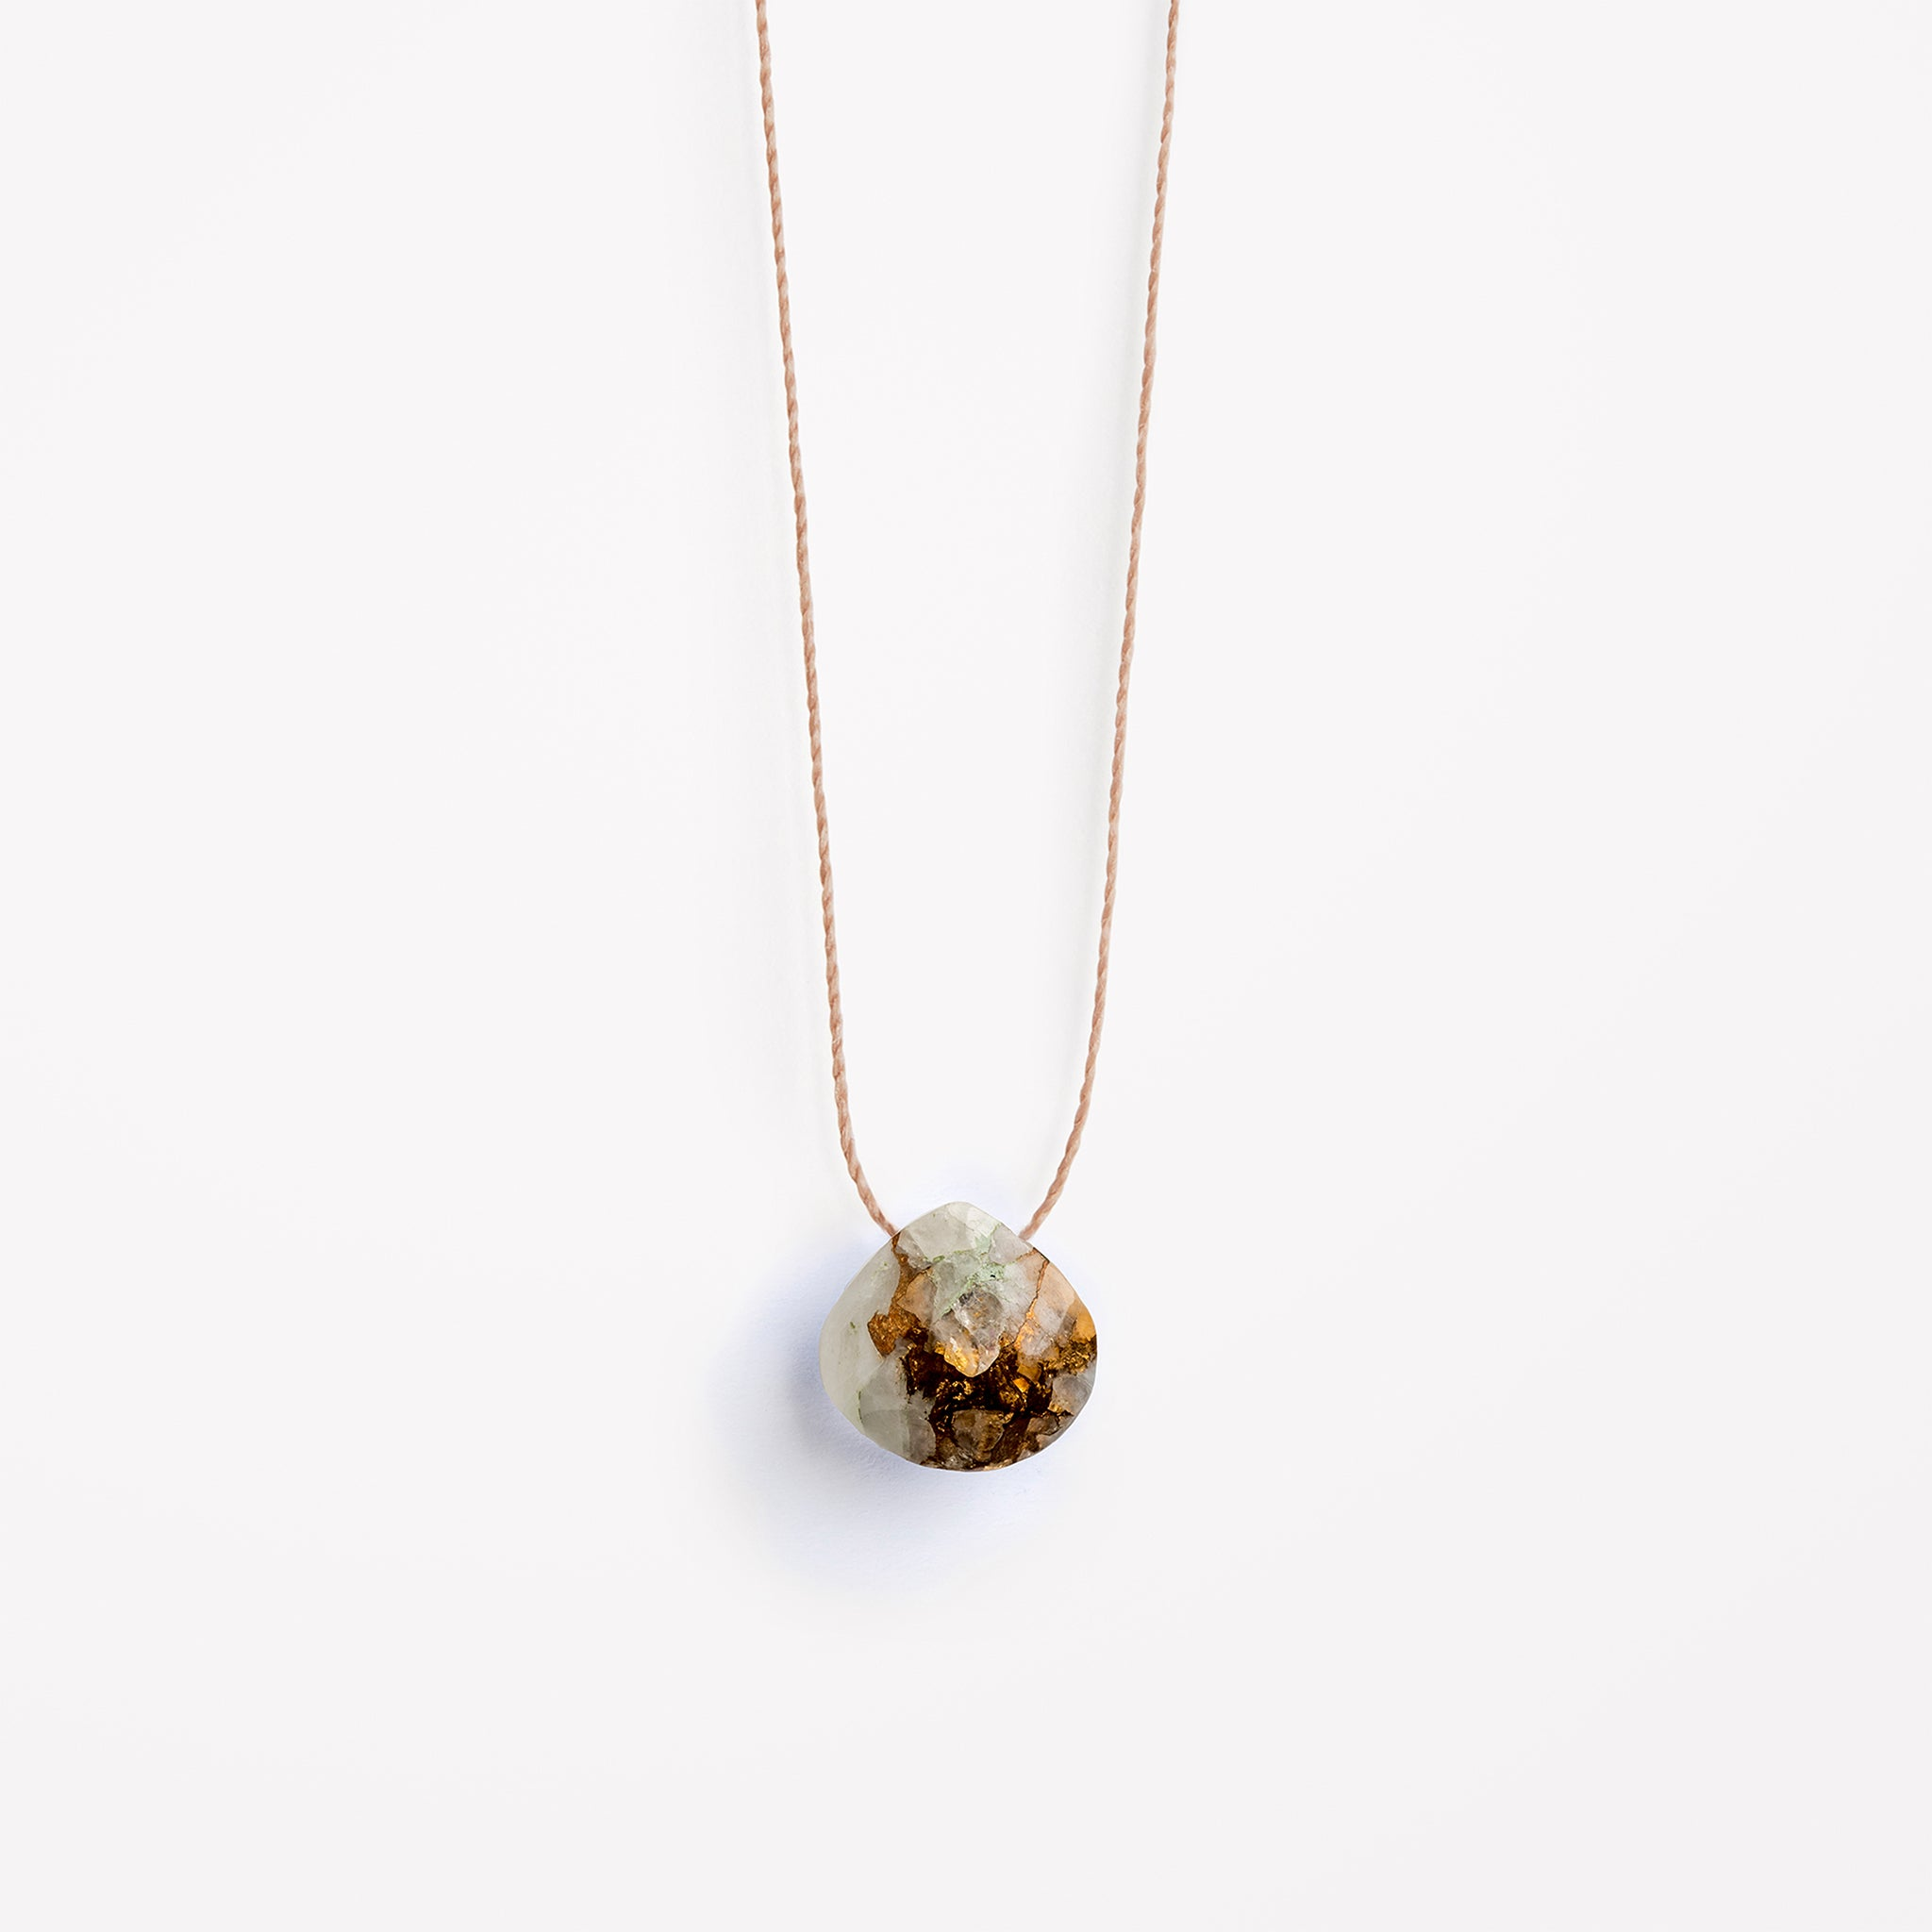 Wanderlust Life copper calcite fine cord necklace, available in 17